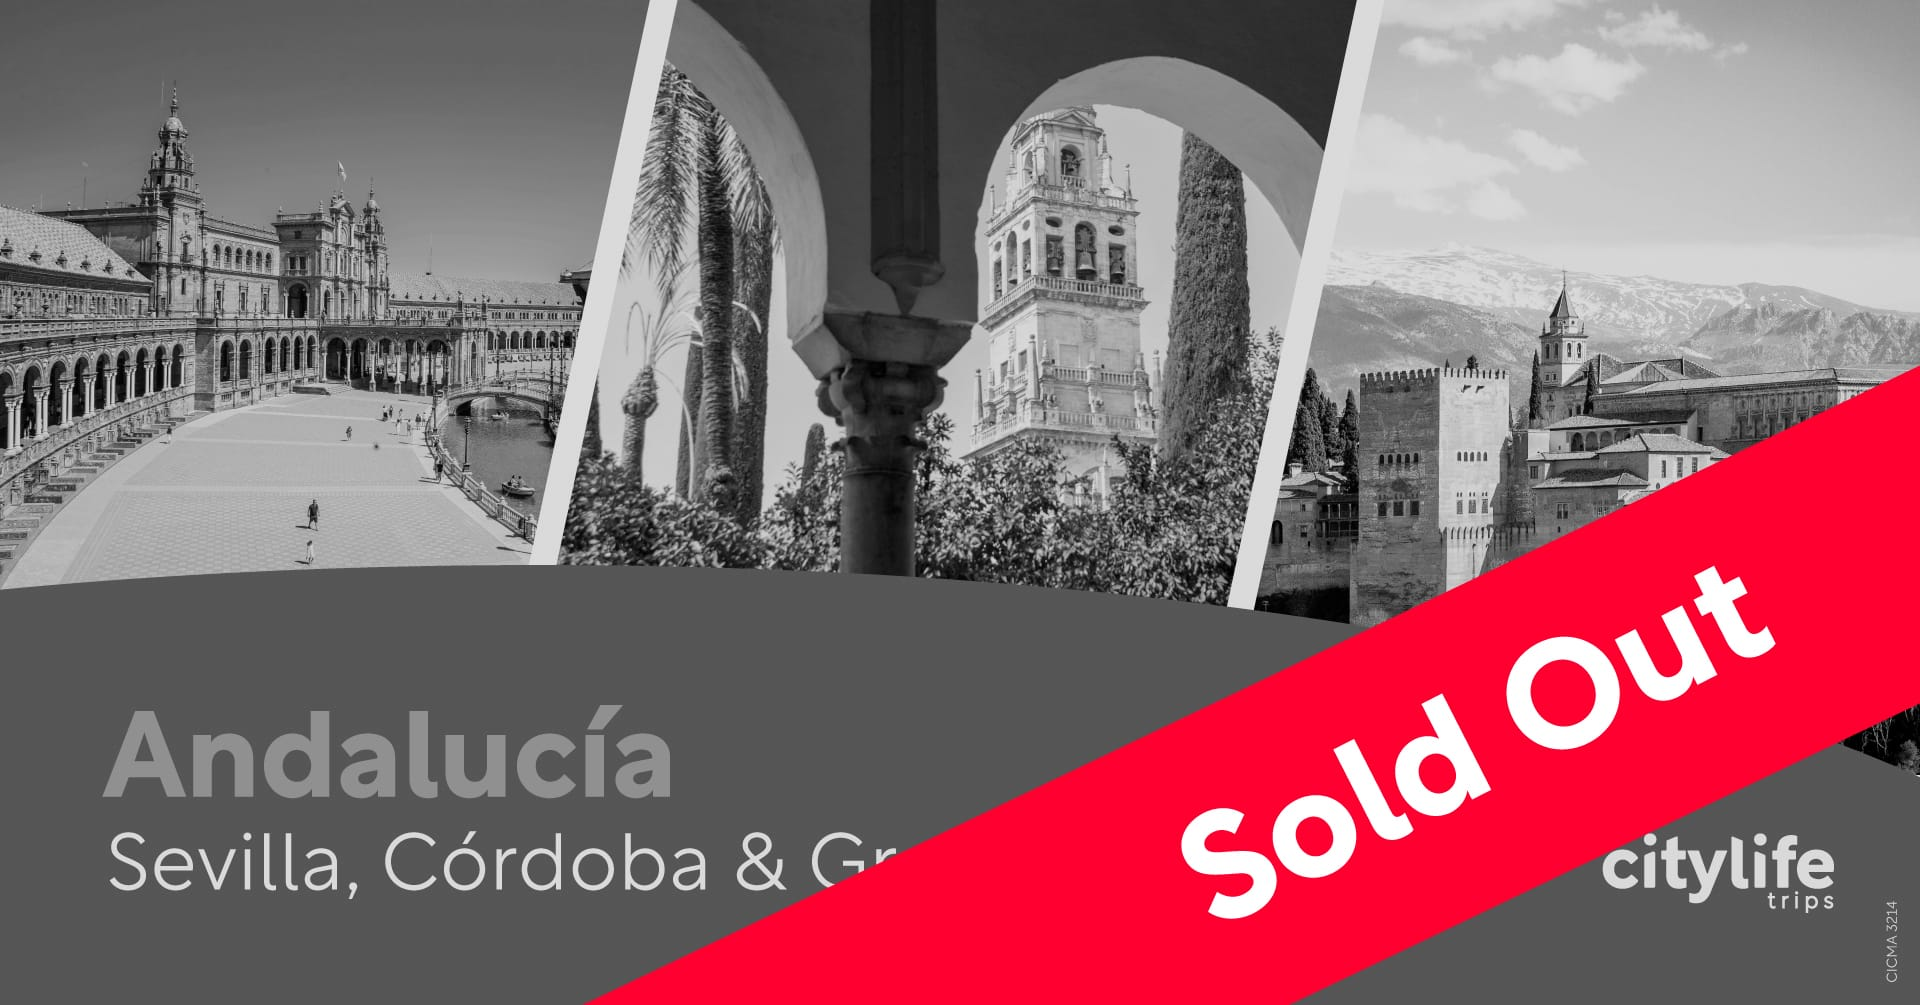 Sold-out-andalucia-fb-event